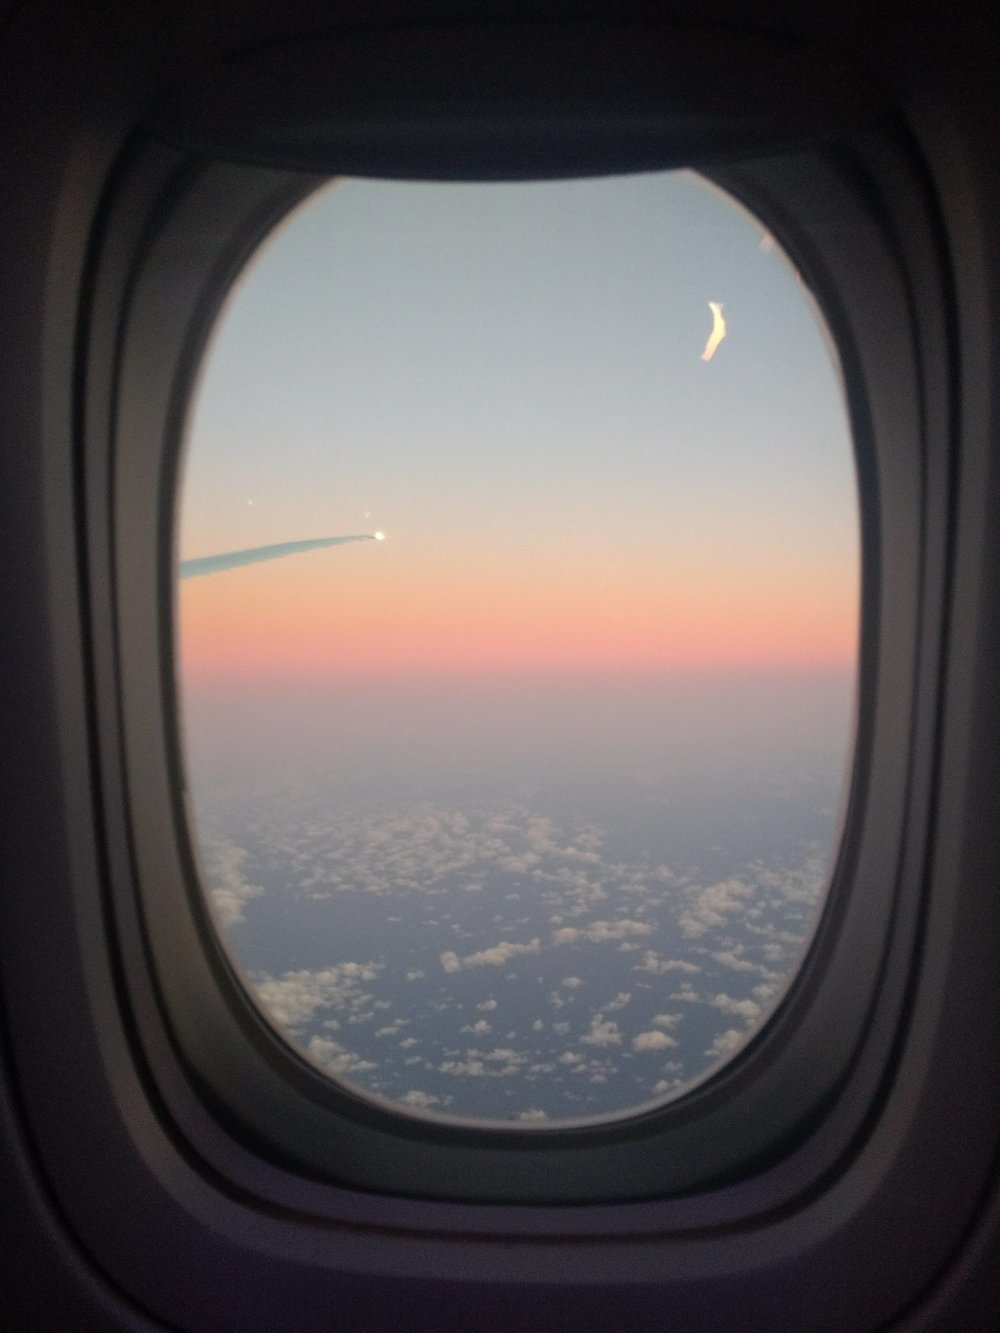 The sunrise towards the end of our Australia flight.